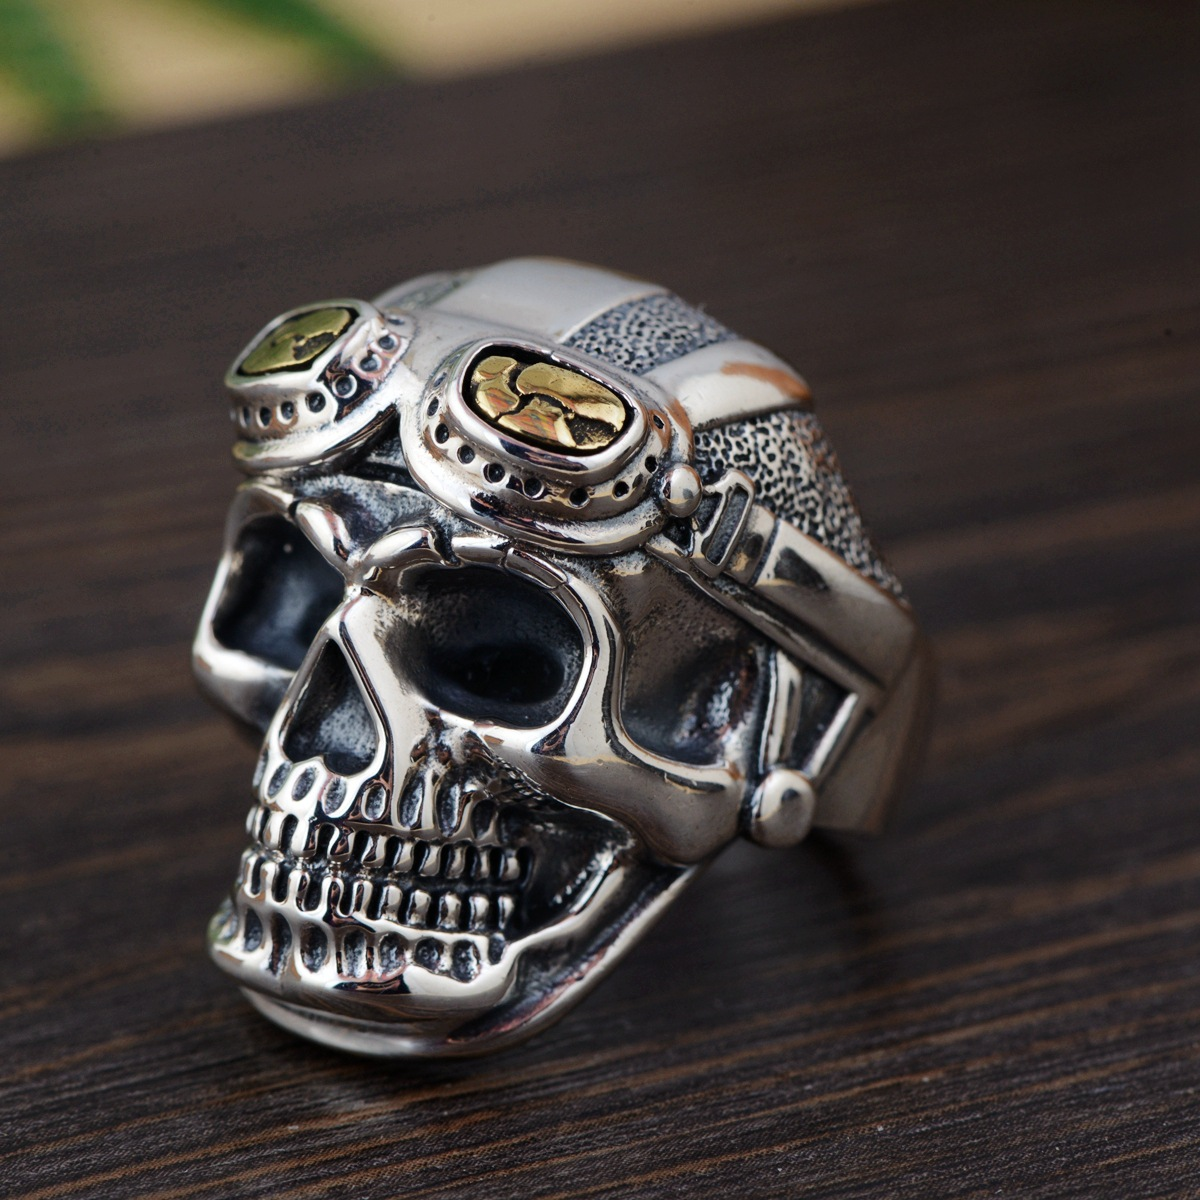 The golden deer wholesale jewelry line personality skull opening ring male money S925 pure silver antique style картридж cactus cs ept0595 светло голубой